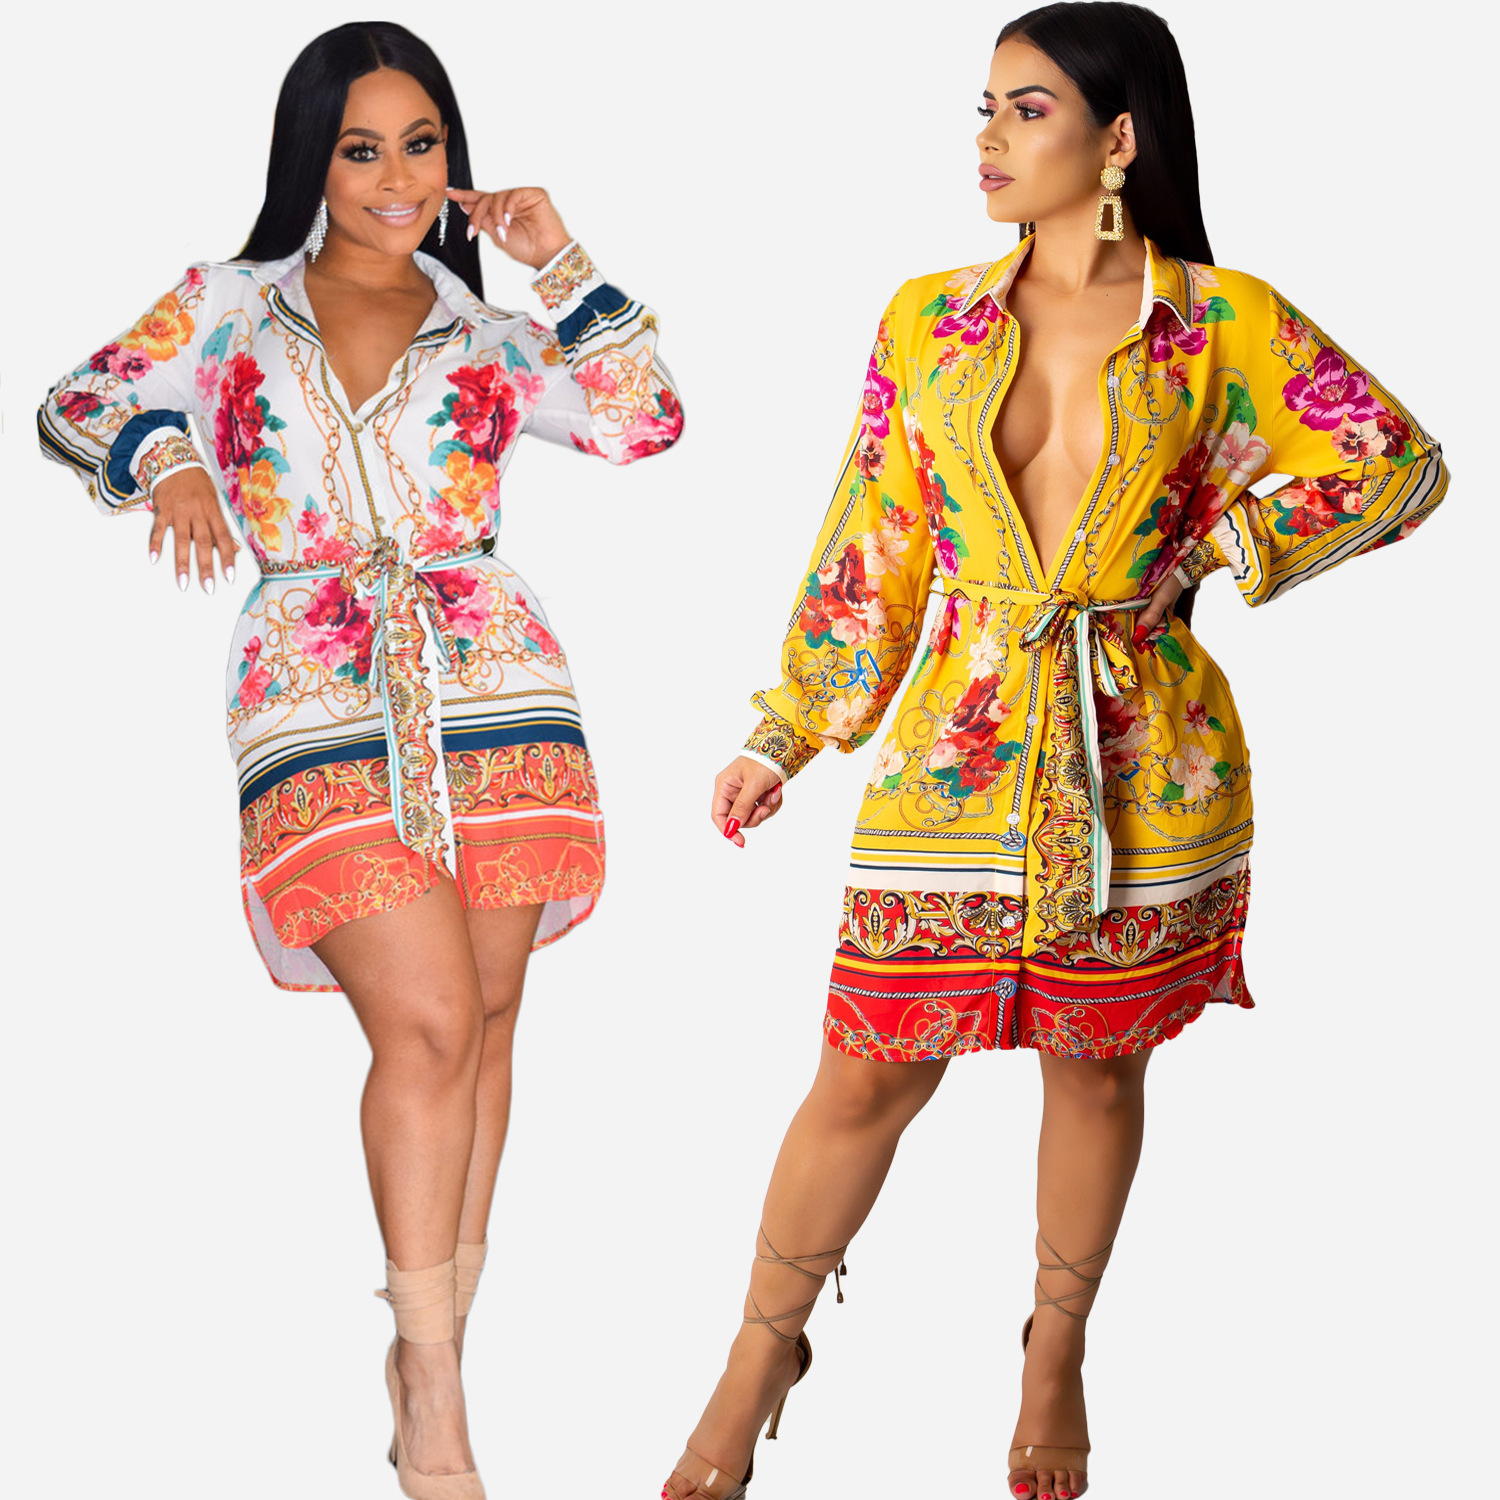 The new autumn/winter 2019 cross-border African ethnic style sexy European and American women's women's long shirt fashion posit thumbnail